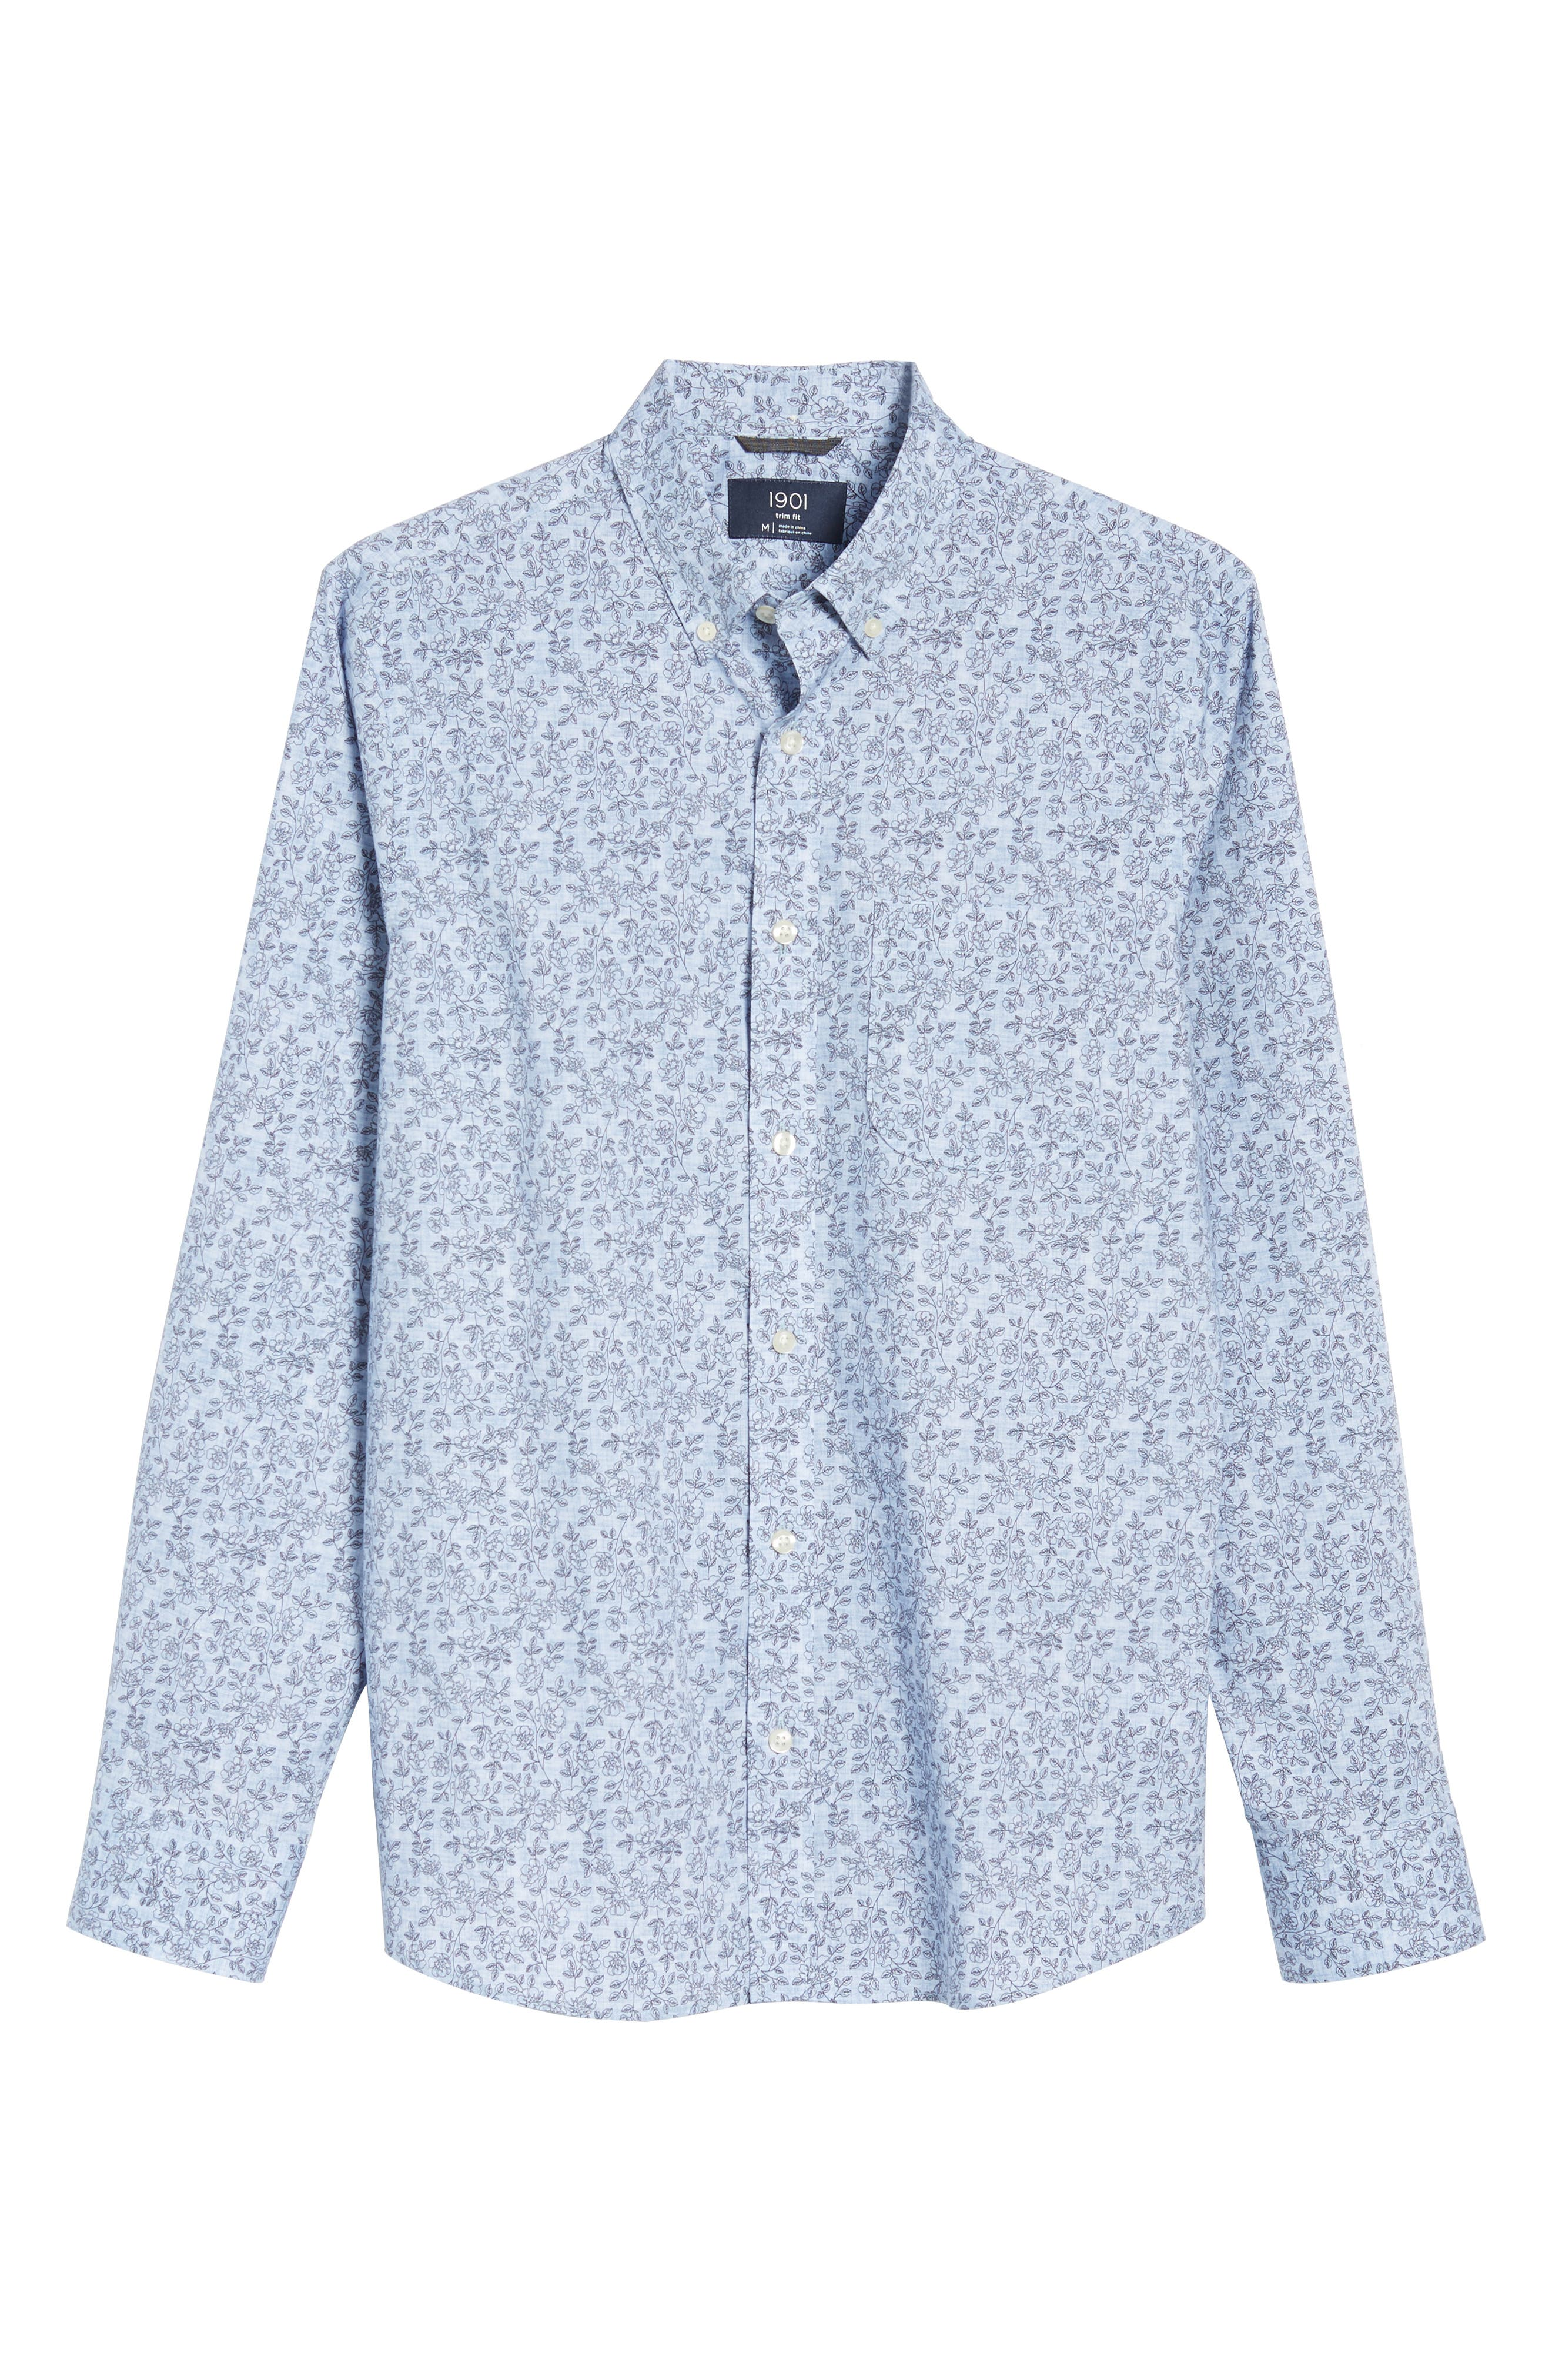 Trim Fit Chambray Floral Print Sport Shirt,                             Alternate thumbnail 6, color,                             Chambray Flower Print